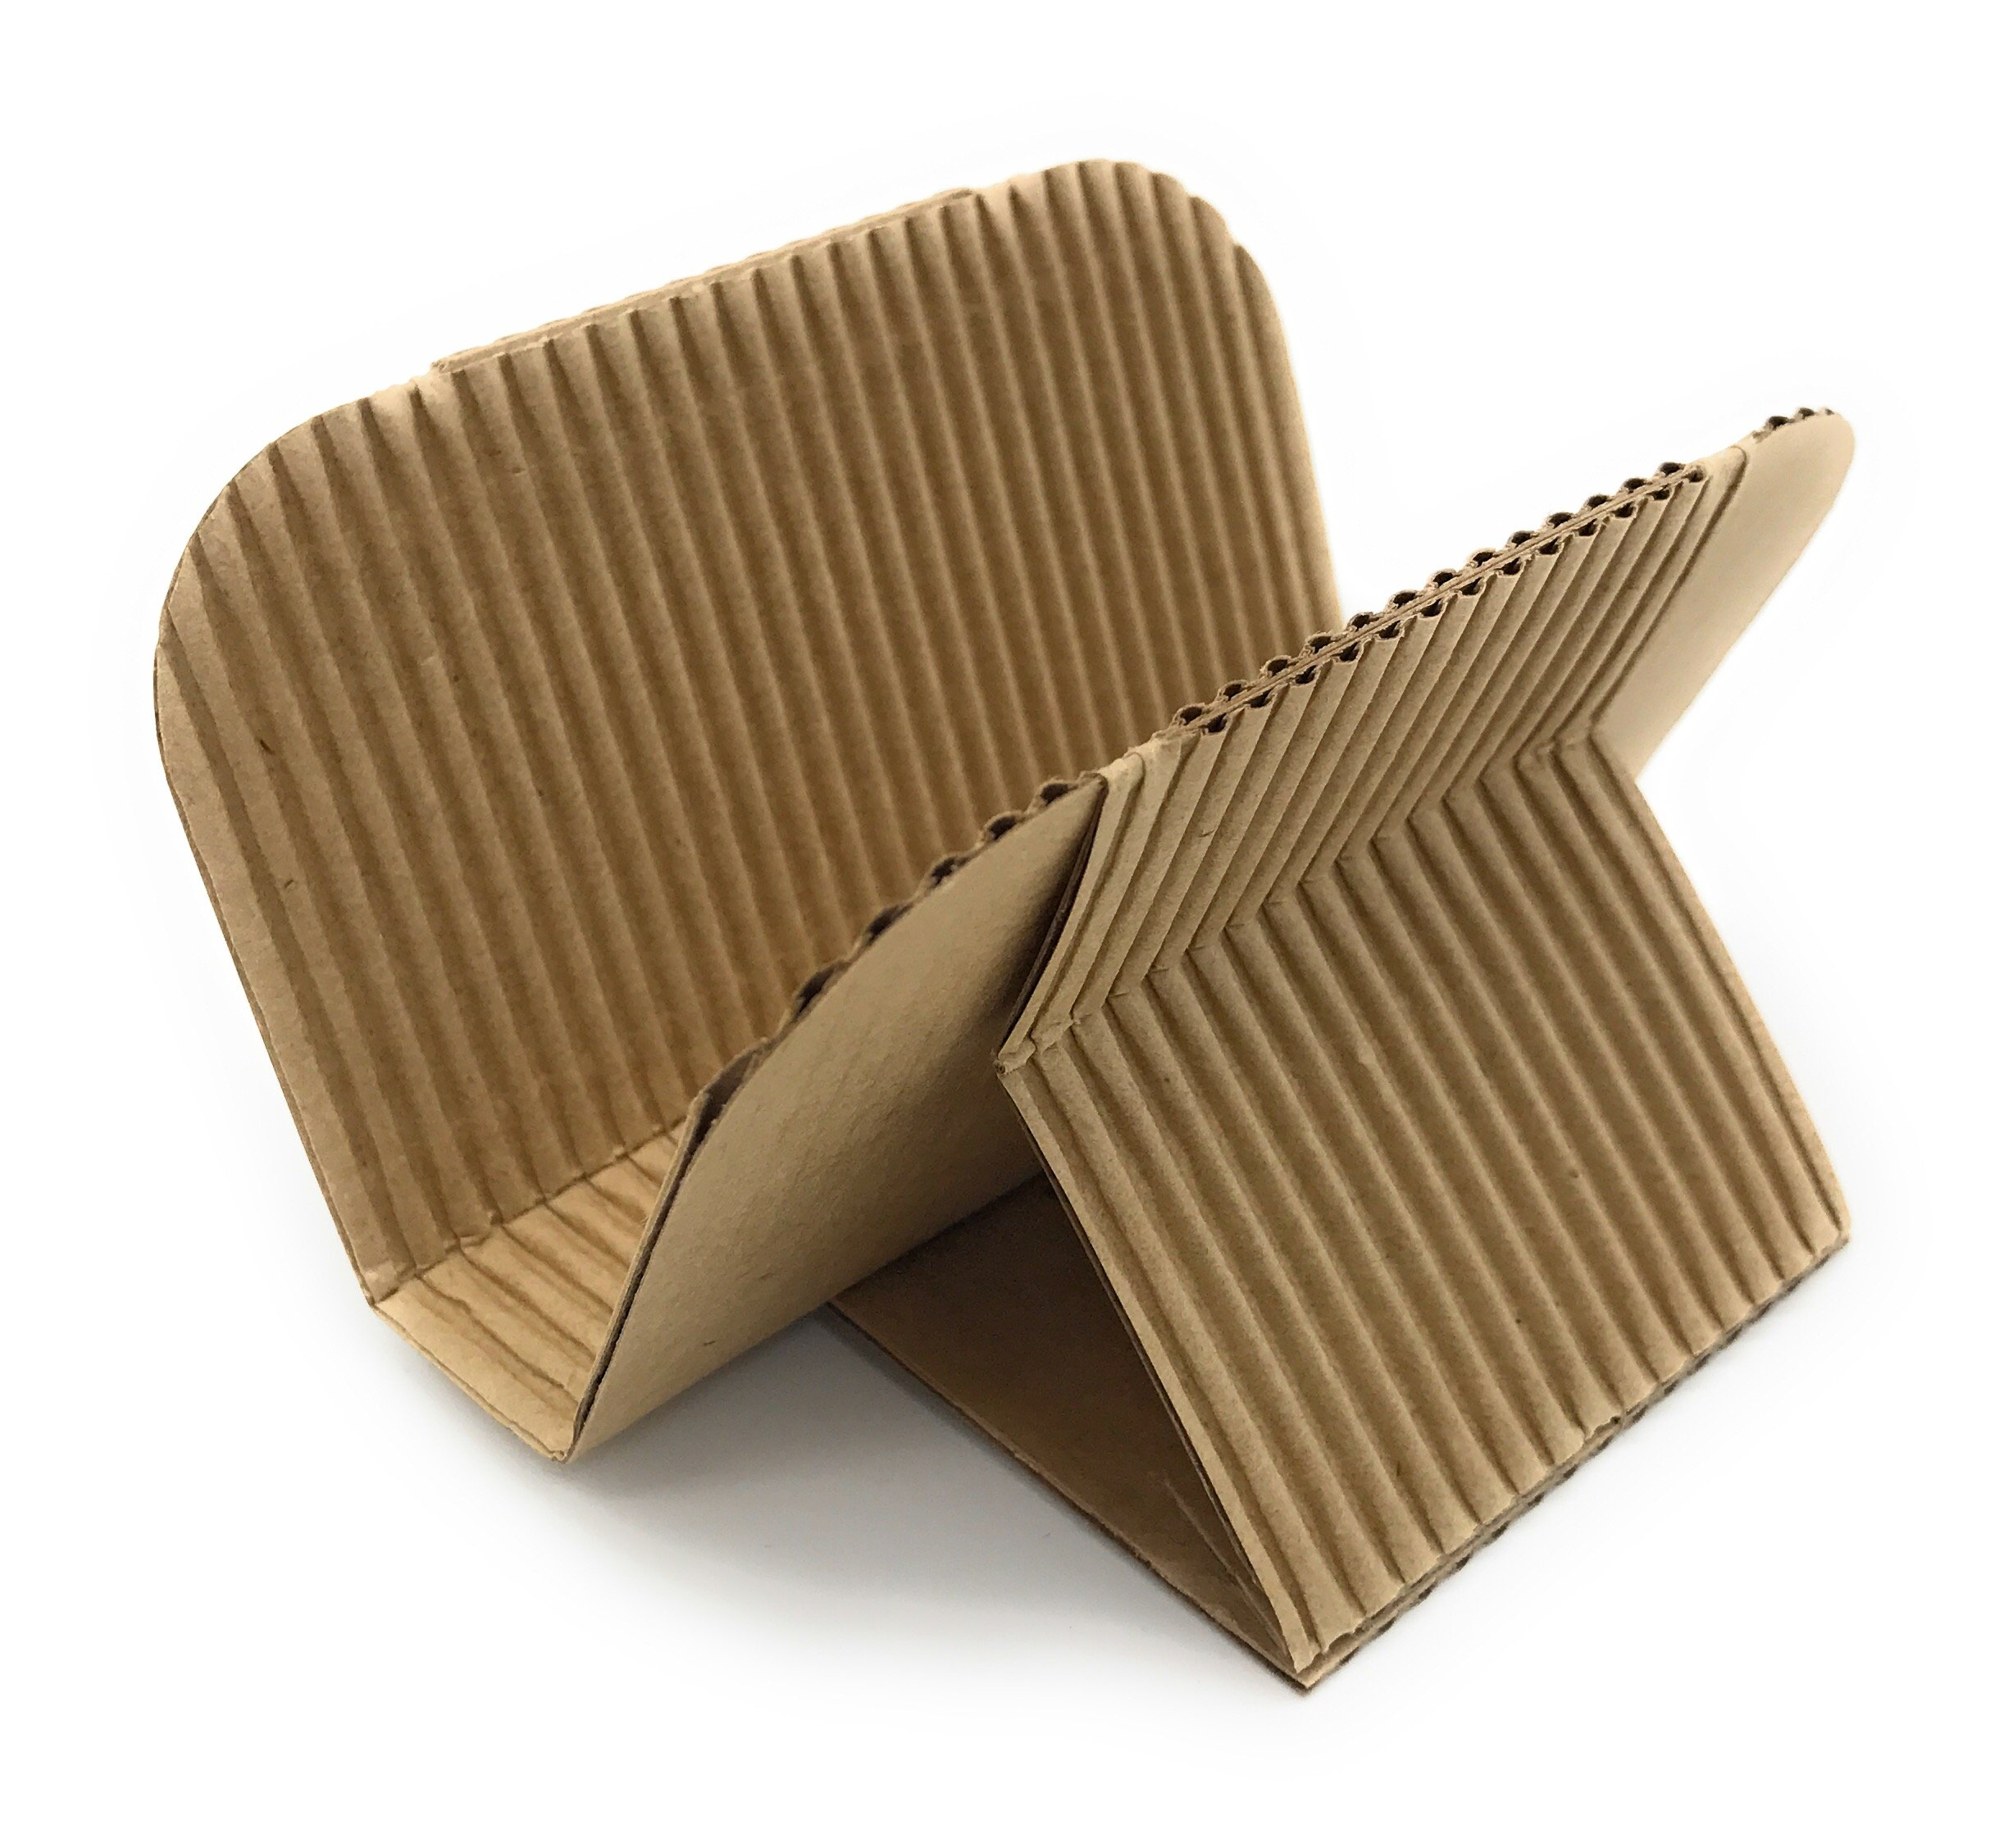 (50 pcs) Disposable Taco Holder Stand - Rack Tray Plates for Serving Hard or Soft Tacos Shells Shawarmas Hot Dogs Waffle Sandwiches Gyros Pita Wraps Party Home Commercial Food Service Packaging